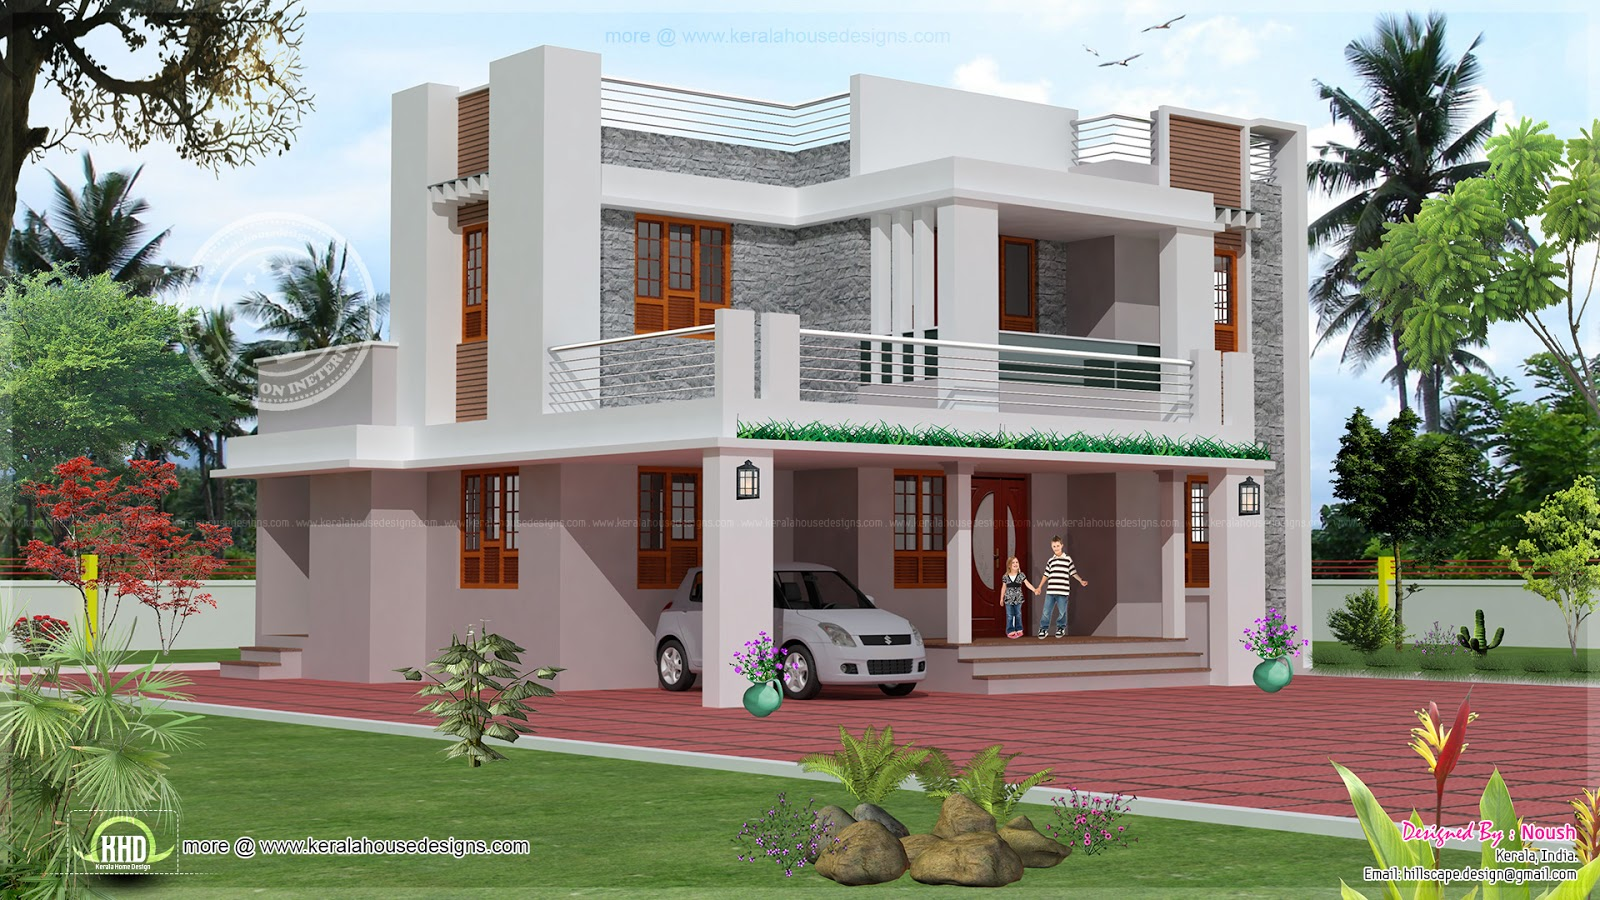 Stupendous 3 Bedroom 2 Story House Plans Kerala Bedroom Style Ideas Largest Home Design Picture Inspirations Pitcheantrous